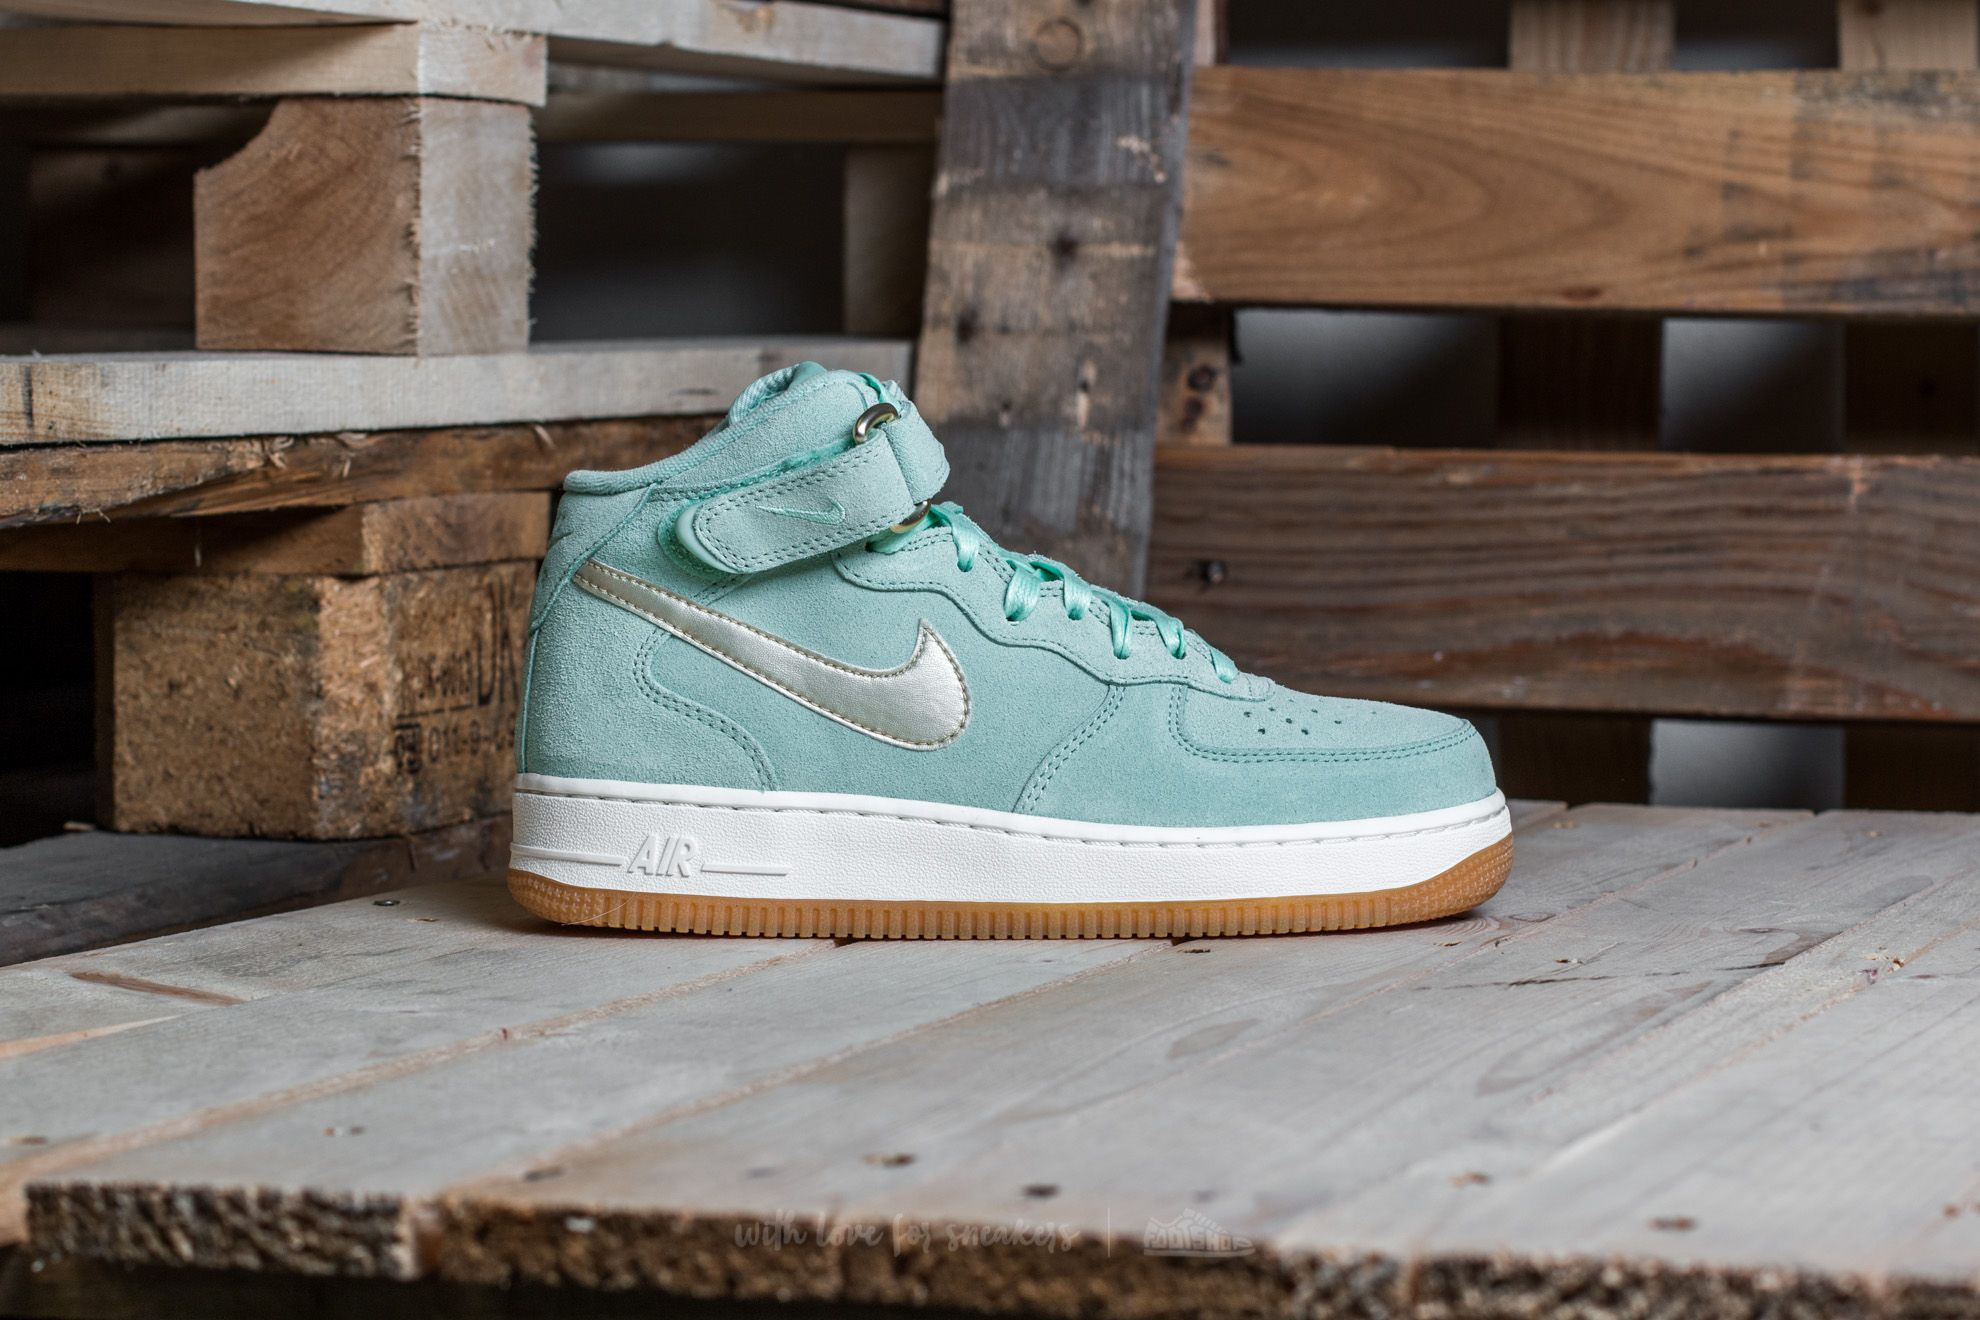 Nike W Air Force 1 '07 Mid Seasonal Enamel Green Metallic Gold Star | Footshop